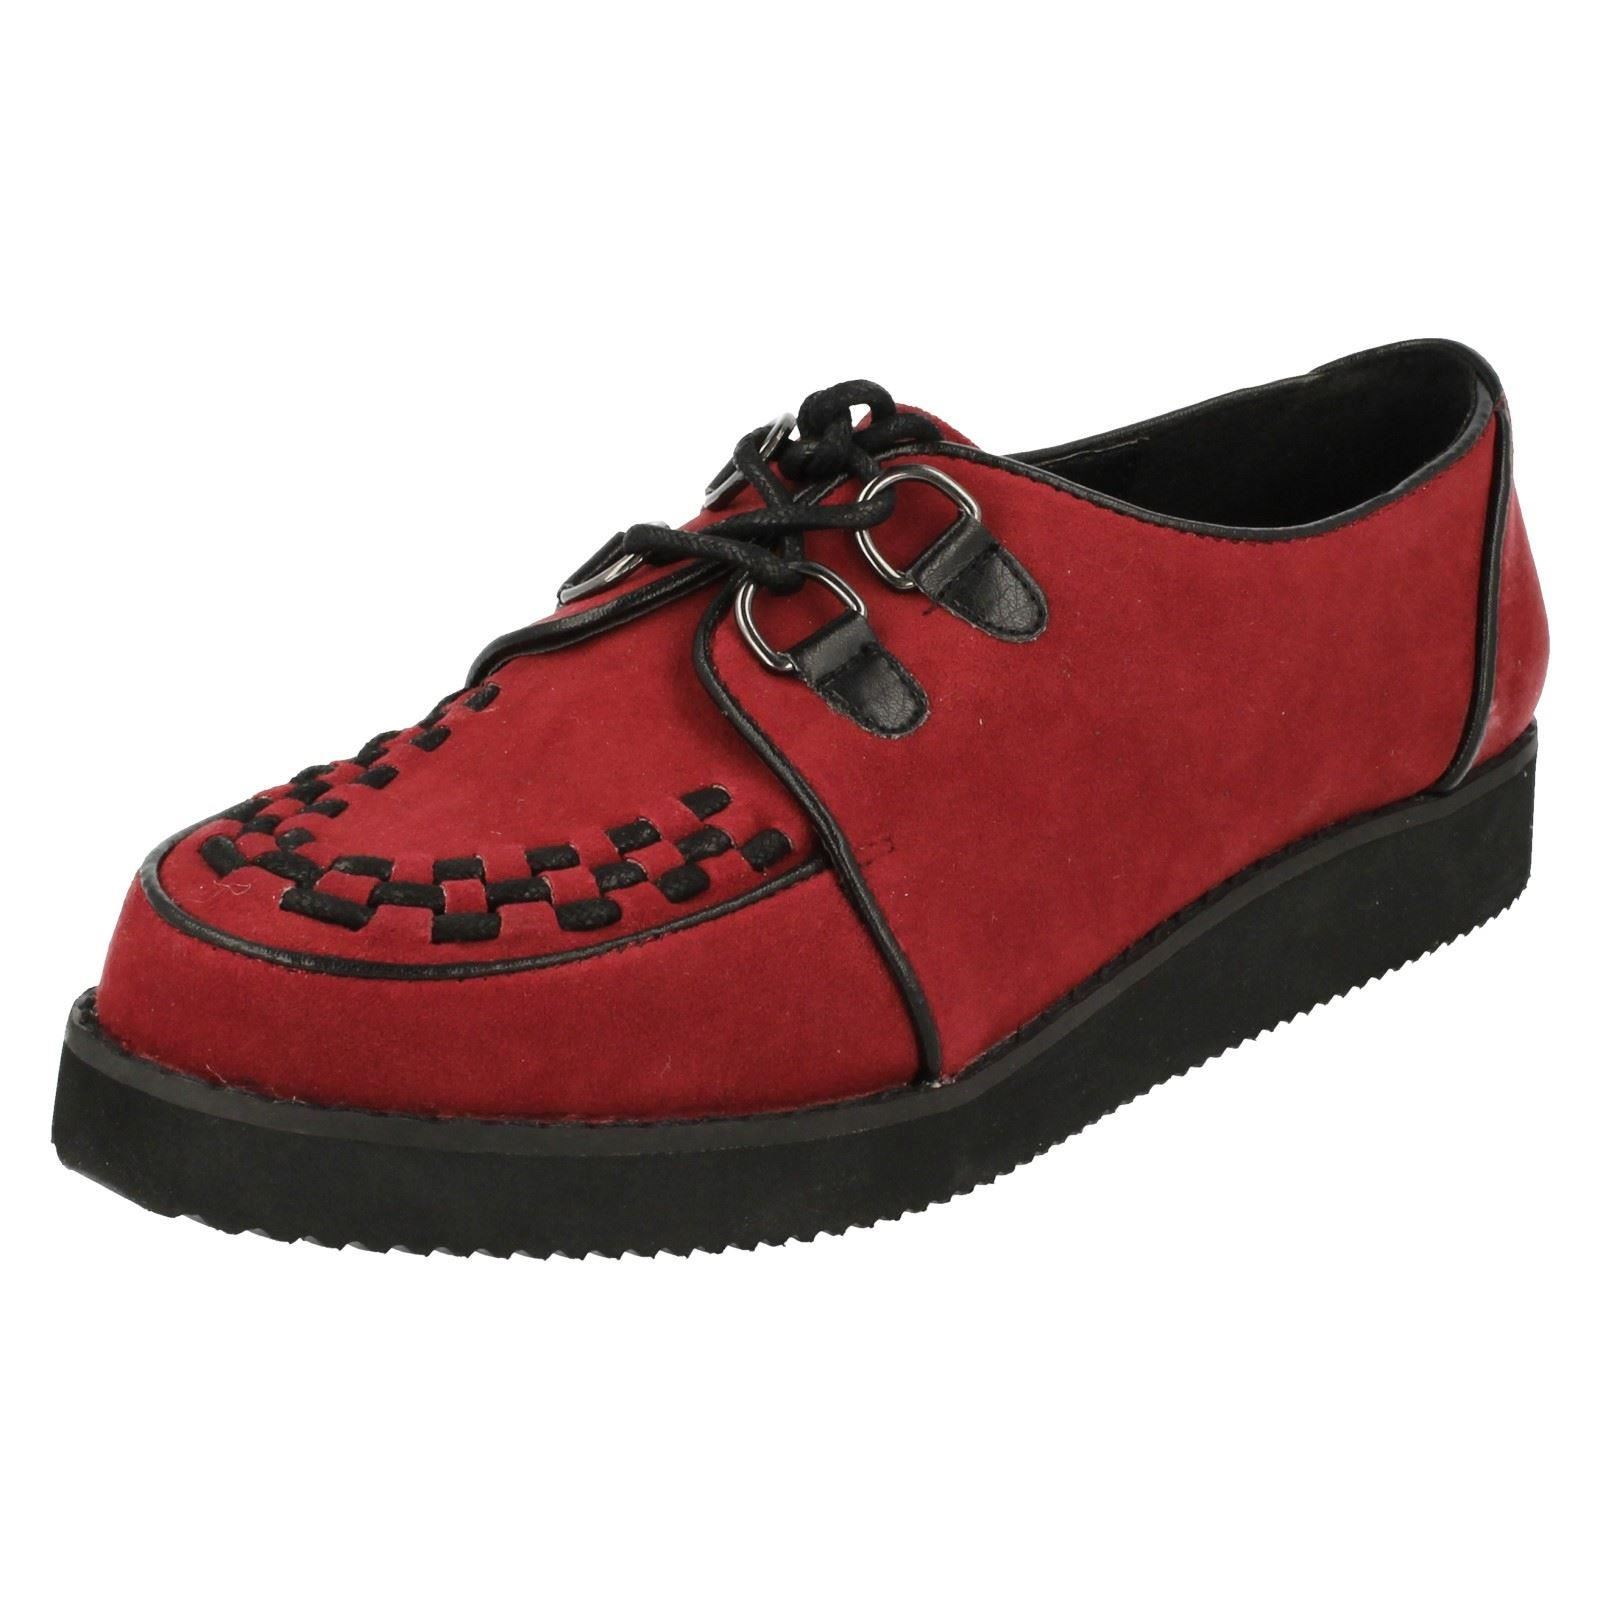 1392f80d275 Ladies Spot on Chunky Sole Shoes F9568 Red UK 4 Standard. About this  product. Picture 1 of 10  Picture 2 of 10 ...